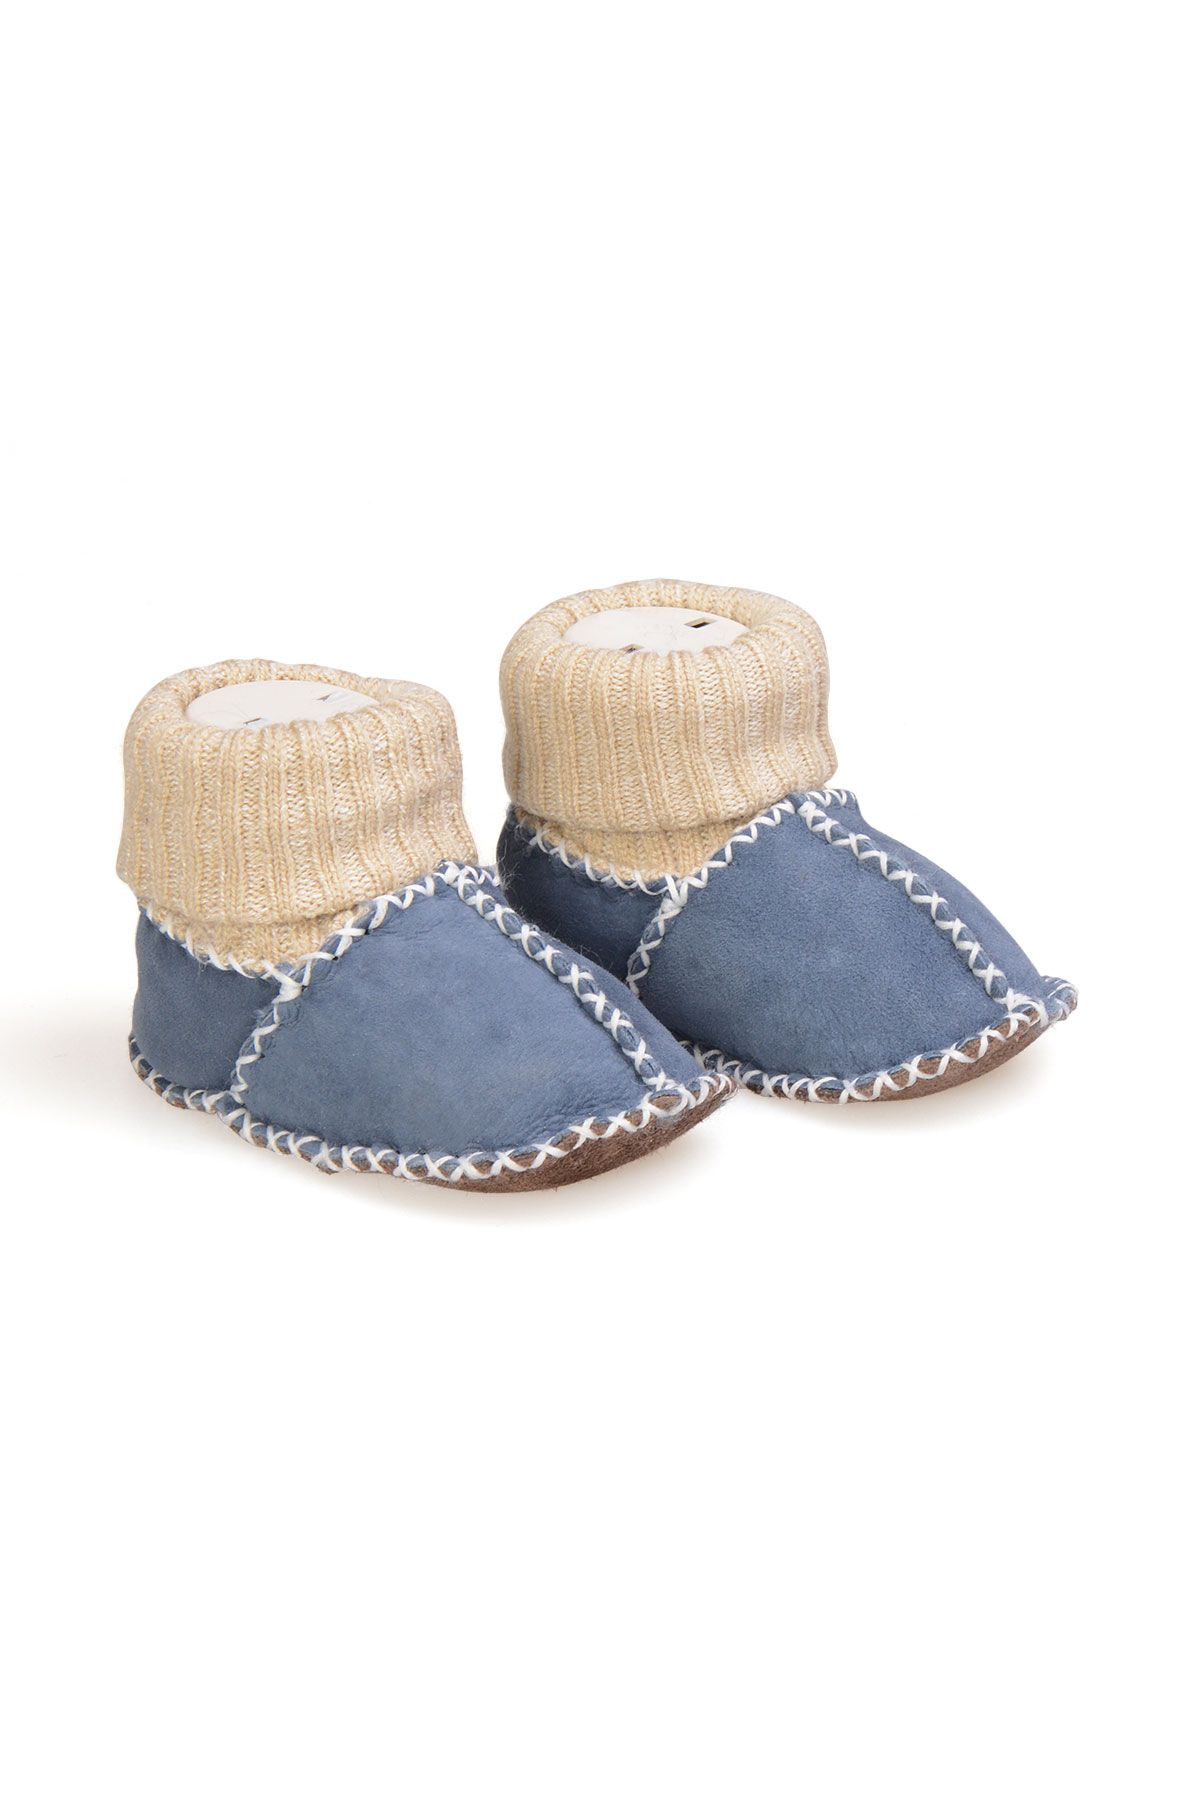 Pegia Shearling Baby's Booties With Socks 141107 Blue